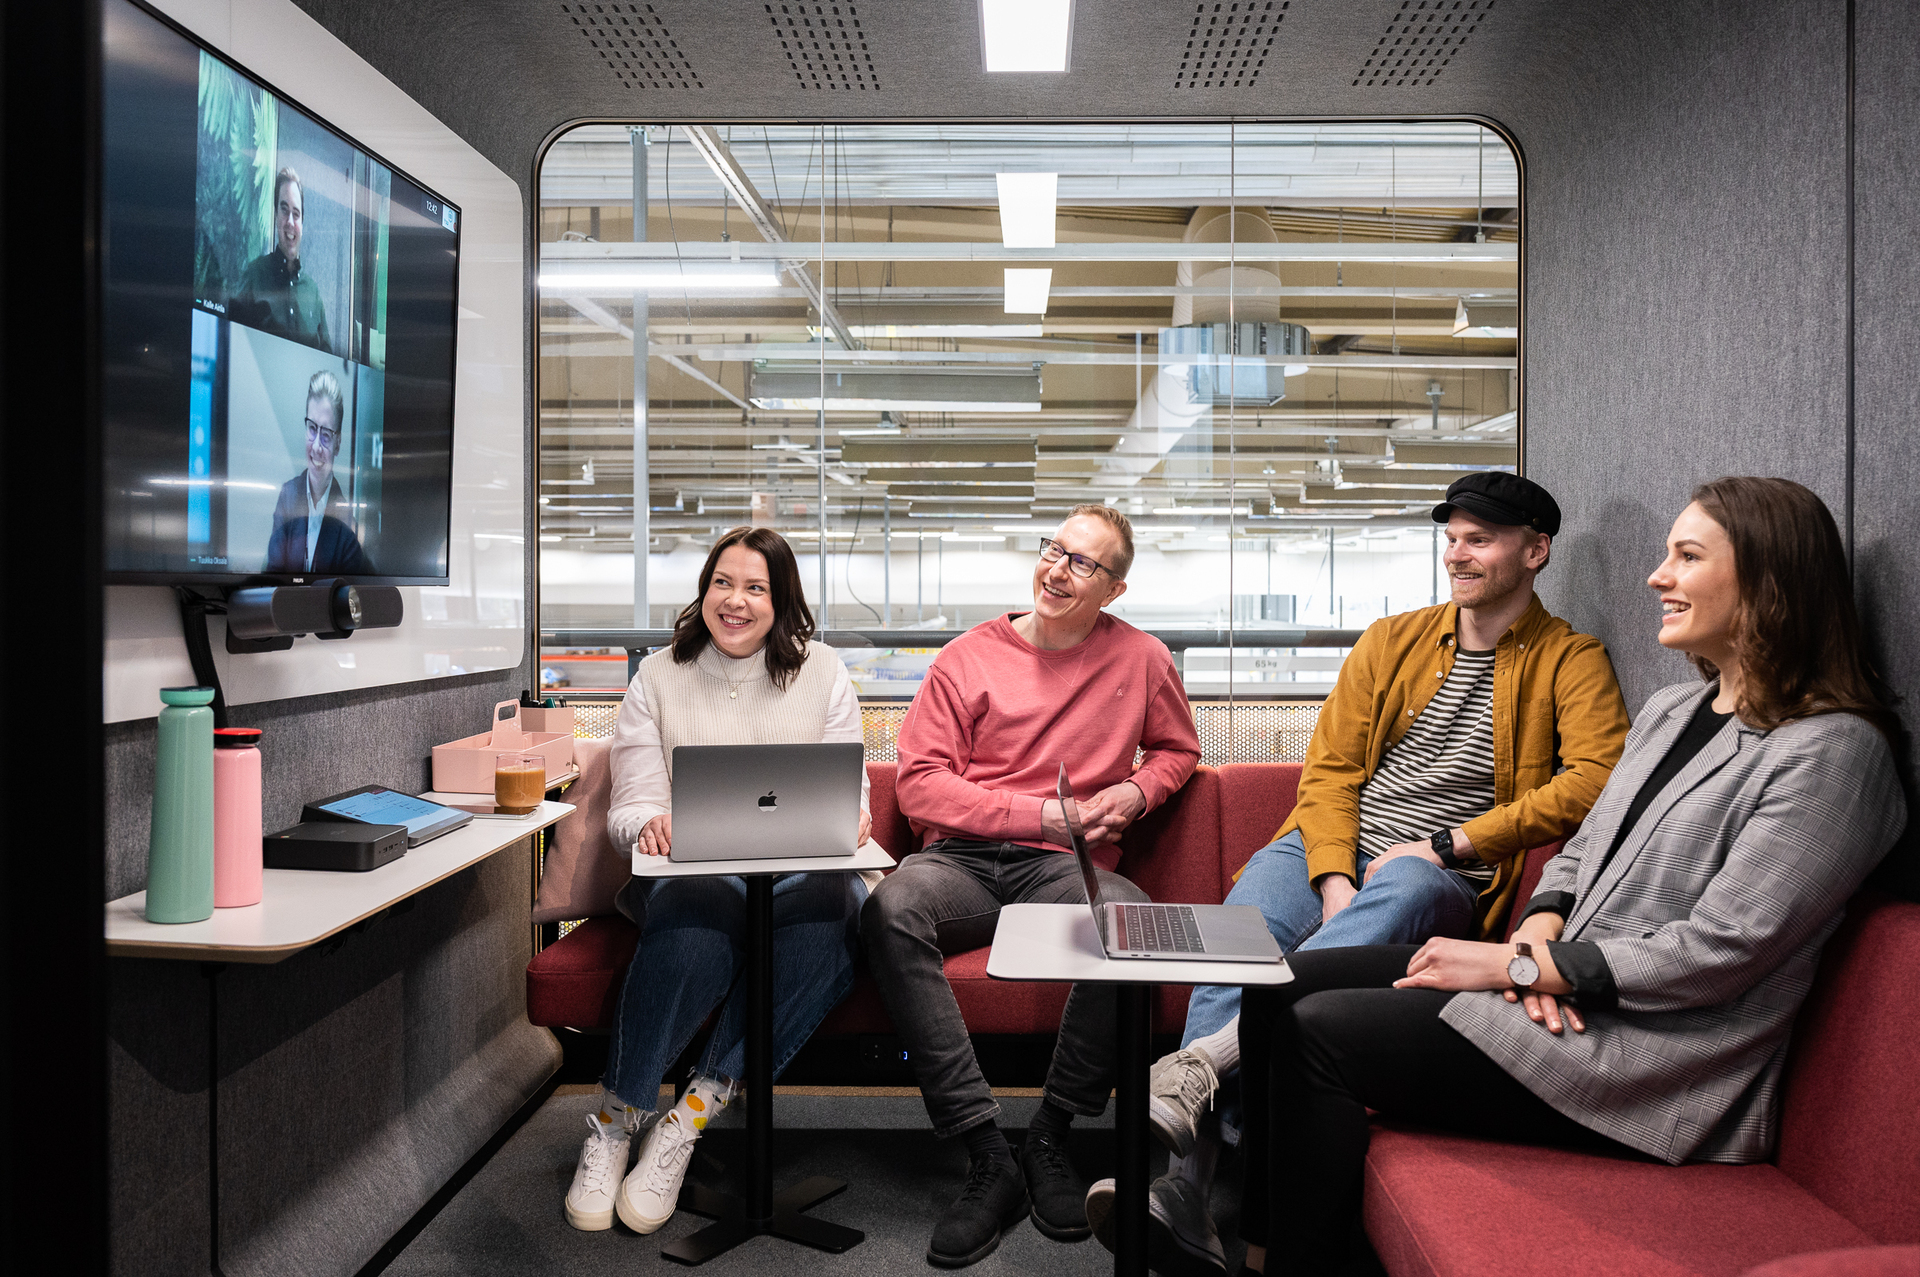 Framery 2Q Lounge interior layout provides a more casual environment for company meetings, a calm space to retreat to during the workday, or an area for socialization. Custom-designed Clint Sofa, large whiteboard, free-standing Piaggio table and a wall shelf make up for a functional yet relaxed setting. The adjustable airflow and lighting create a happy atmosphere to work in. Additional options include, for example, a display bracket on the wall for a TV or a booking system ready option for the door for reserving the pod.